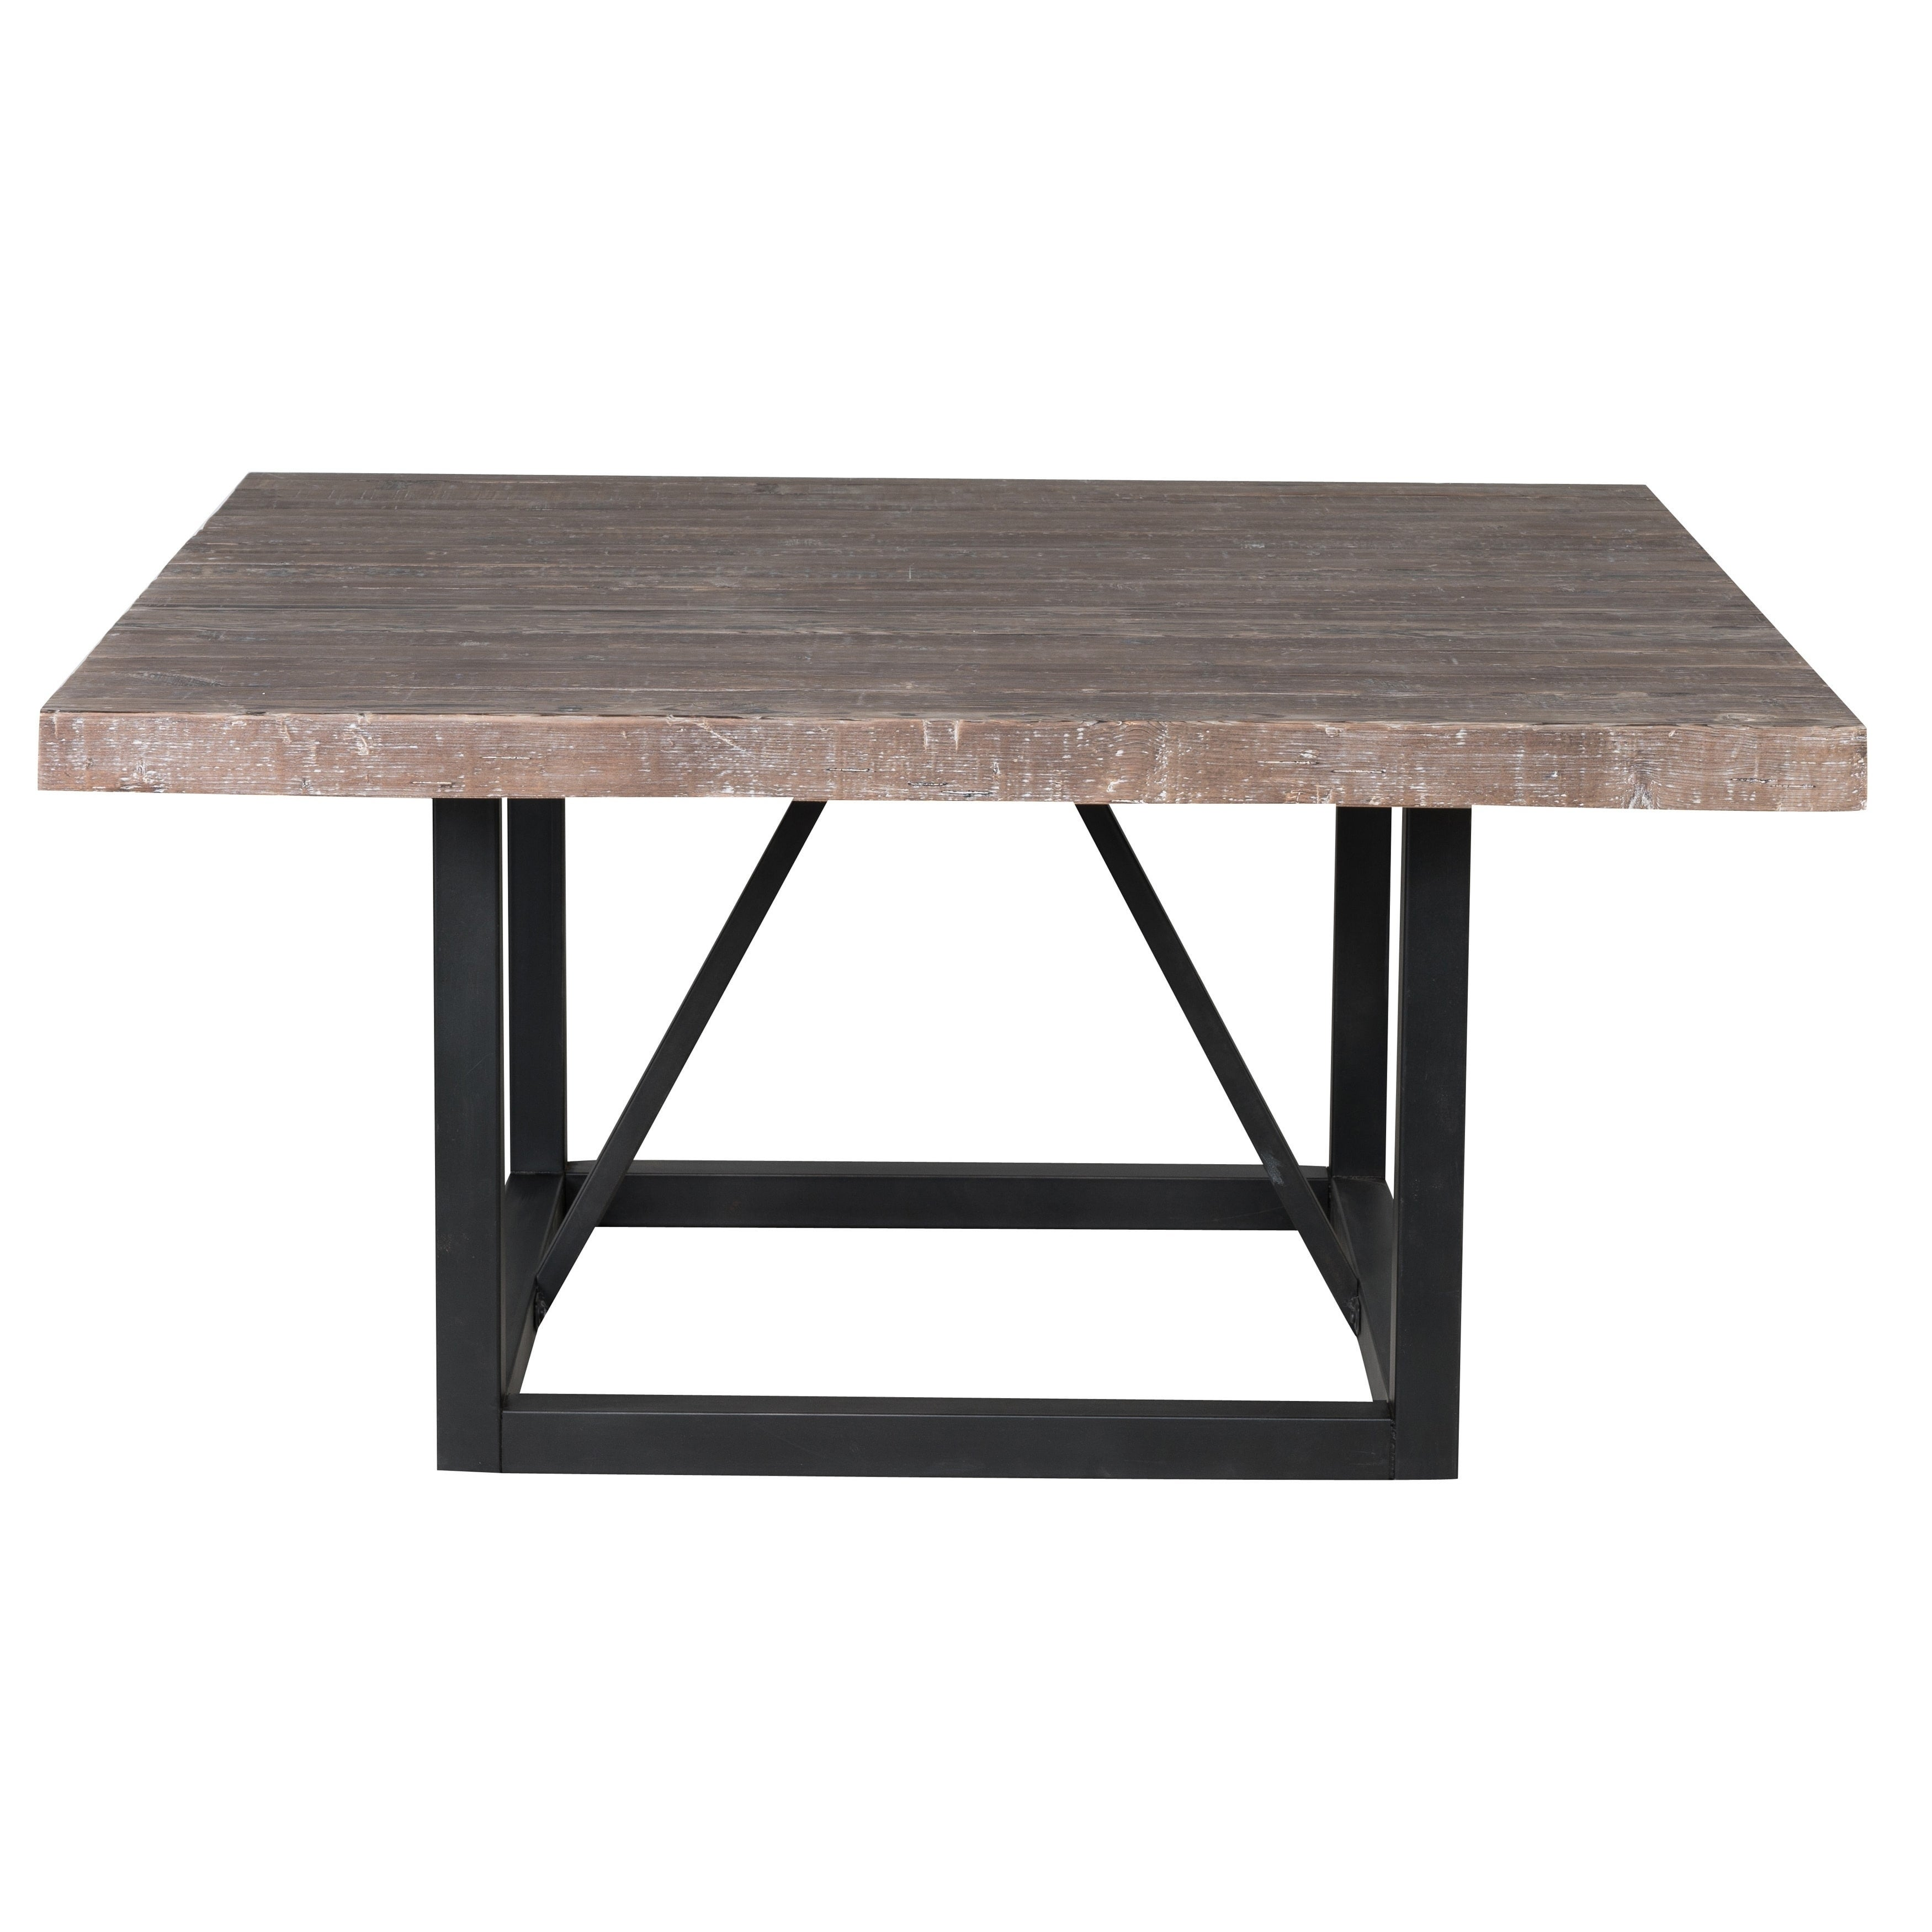 Beau Shop Mia Reclaimed Wood 60 Inch Square Dining Table By Kosas Home   Brown    On Sale   Free Shipping Today   Overstock   13788481